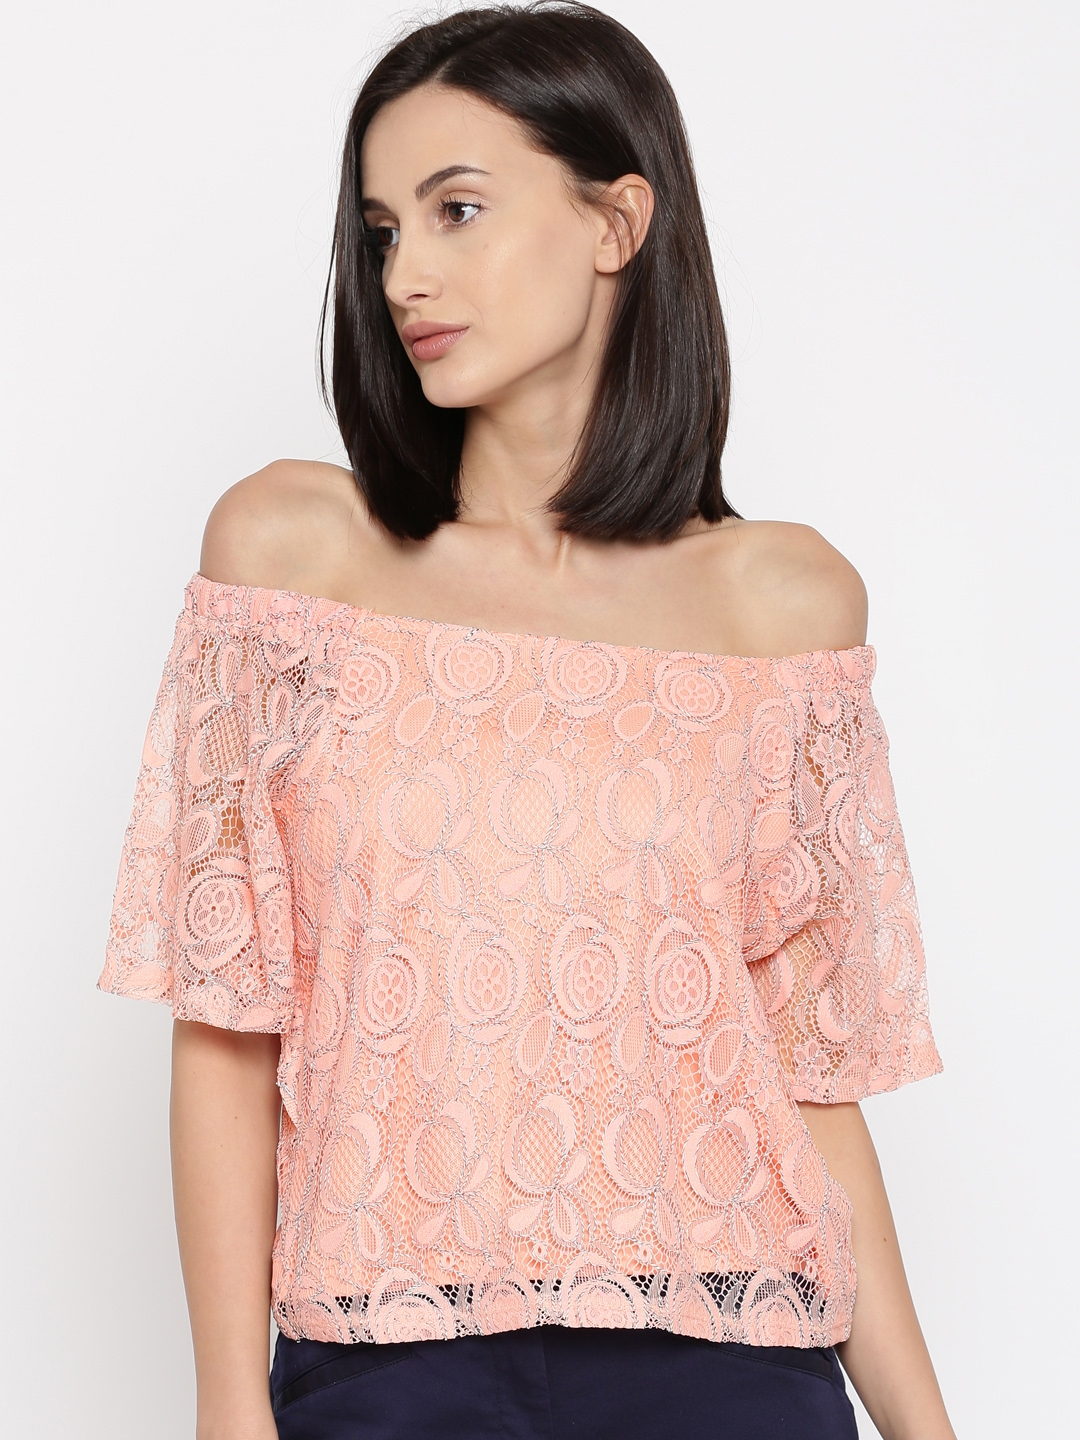 978dc0332af44 Buy Honey By Pantaloons Women Peach Coloured Lace Bardot Top - Tops ...